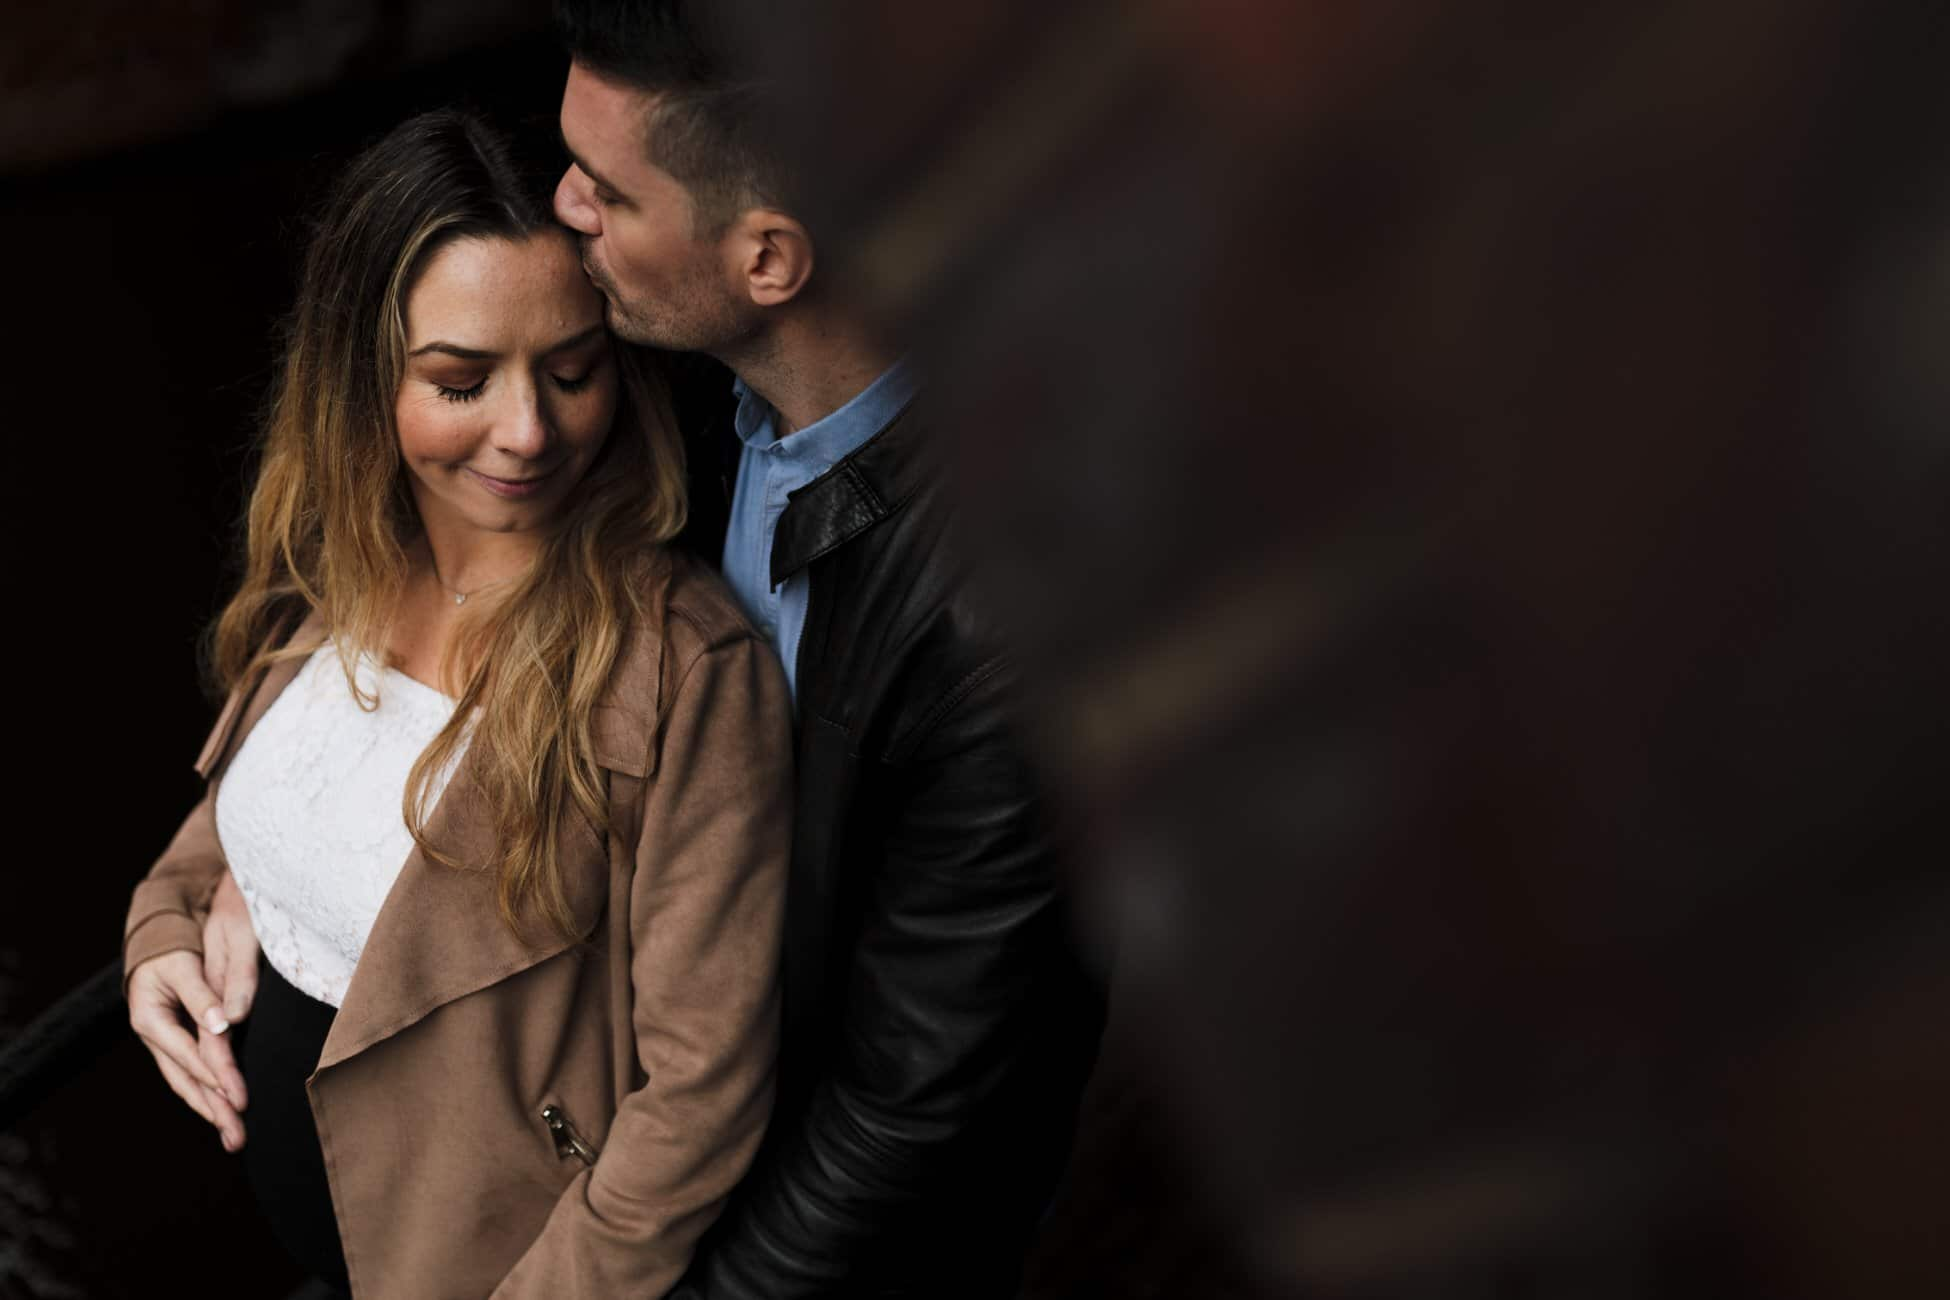 Engagement photo on Manchester canal